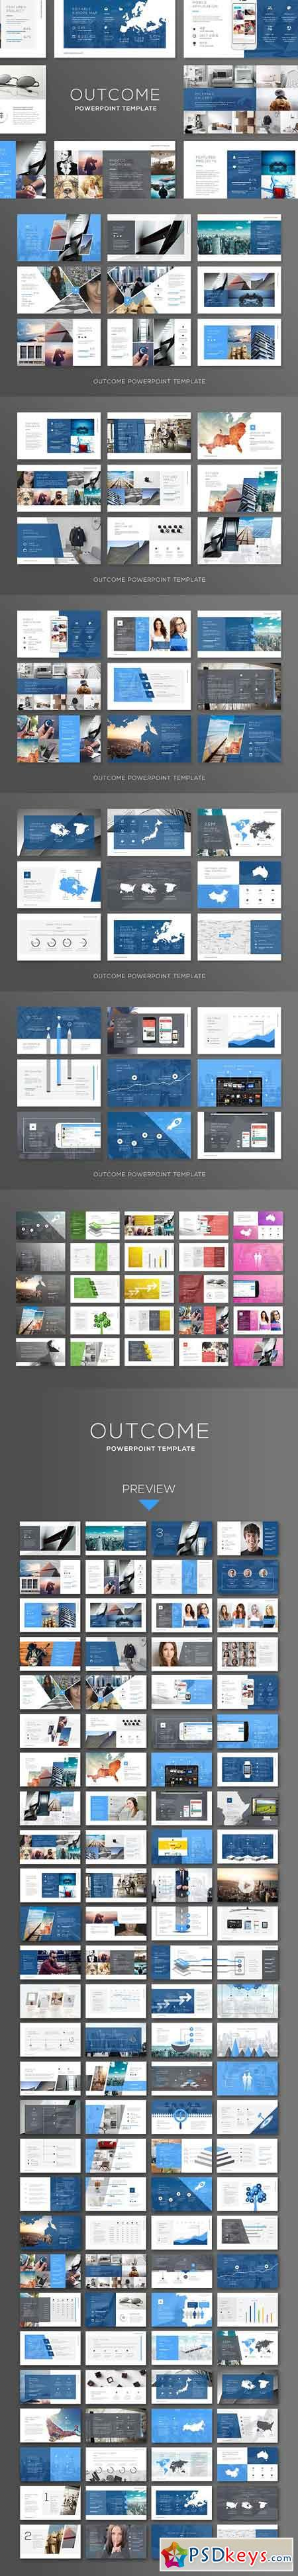 Outcome PowerPoint 1219935